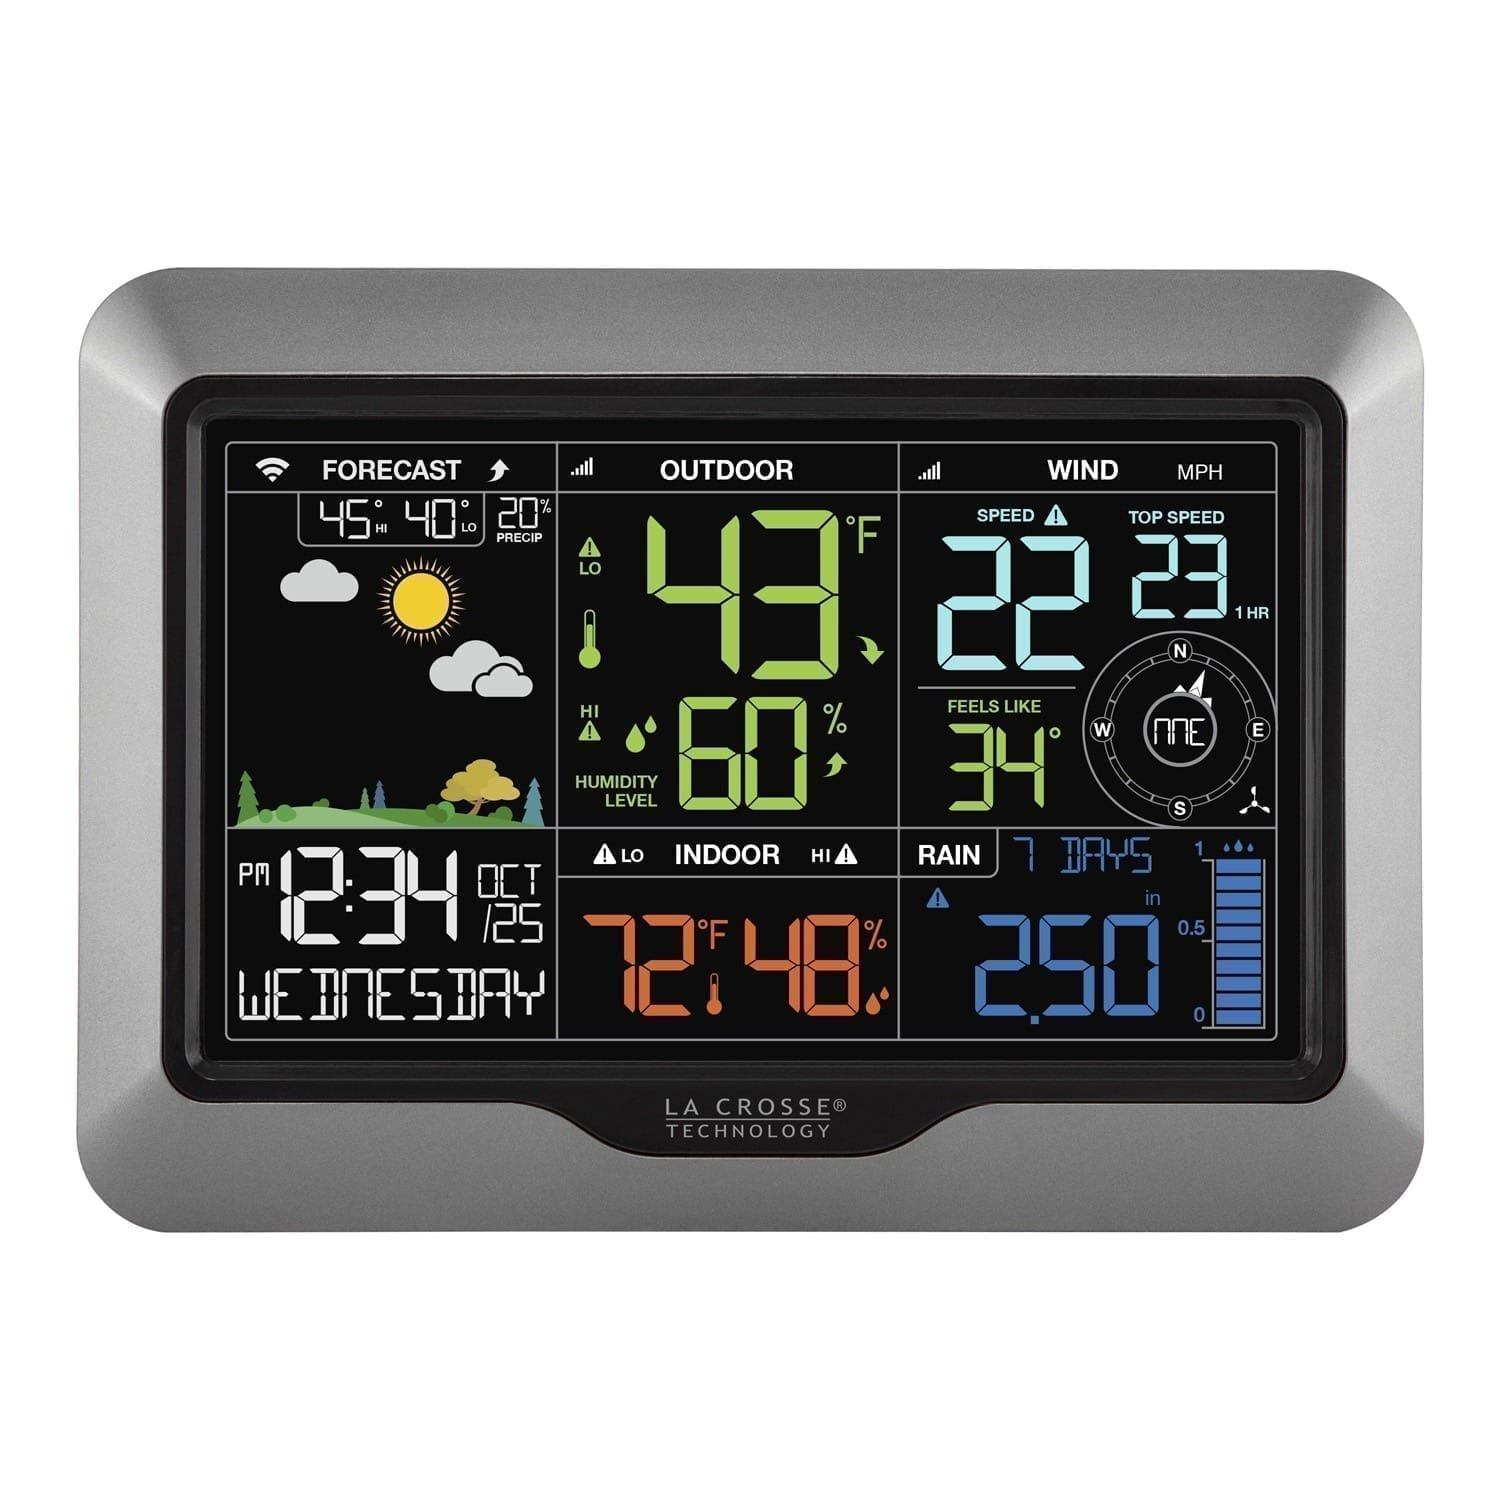 Smartphone Professional Monitored Weather Station